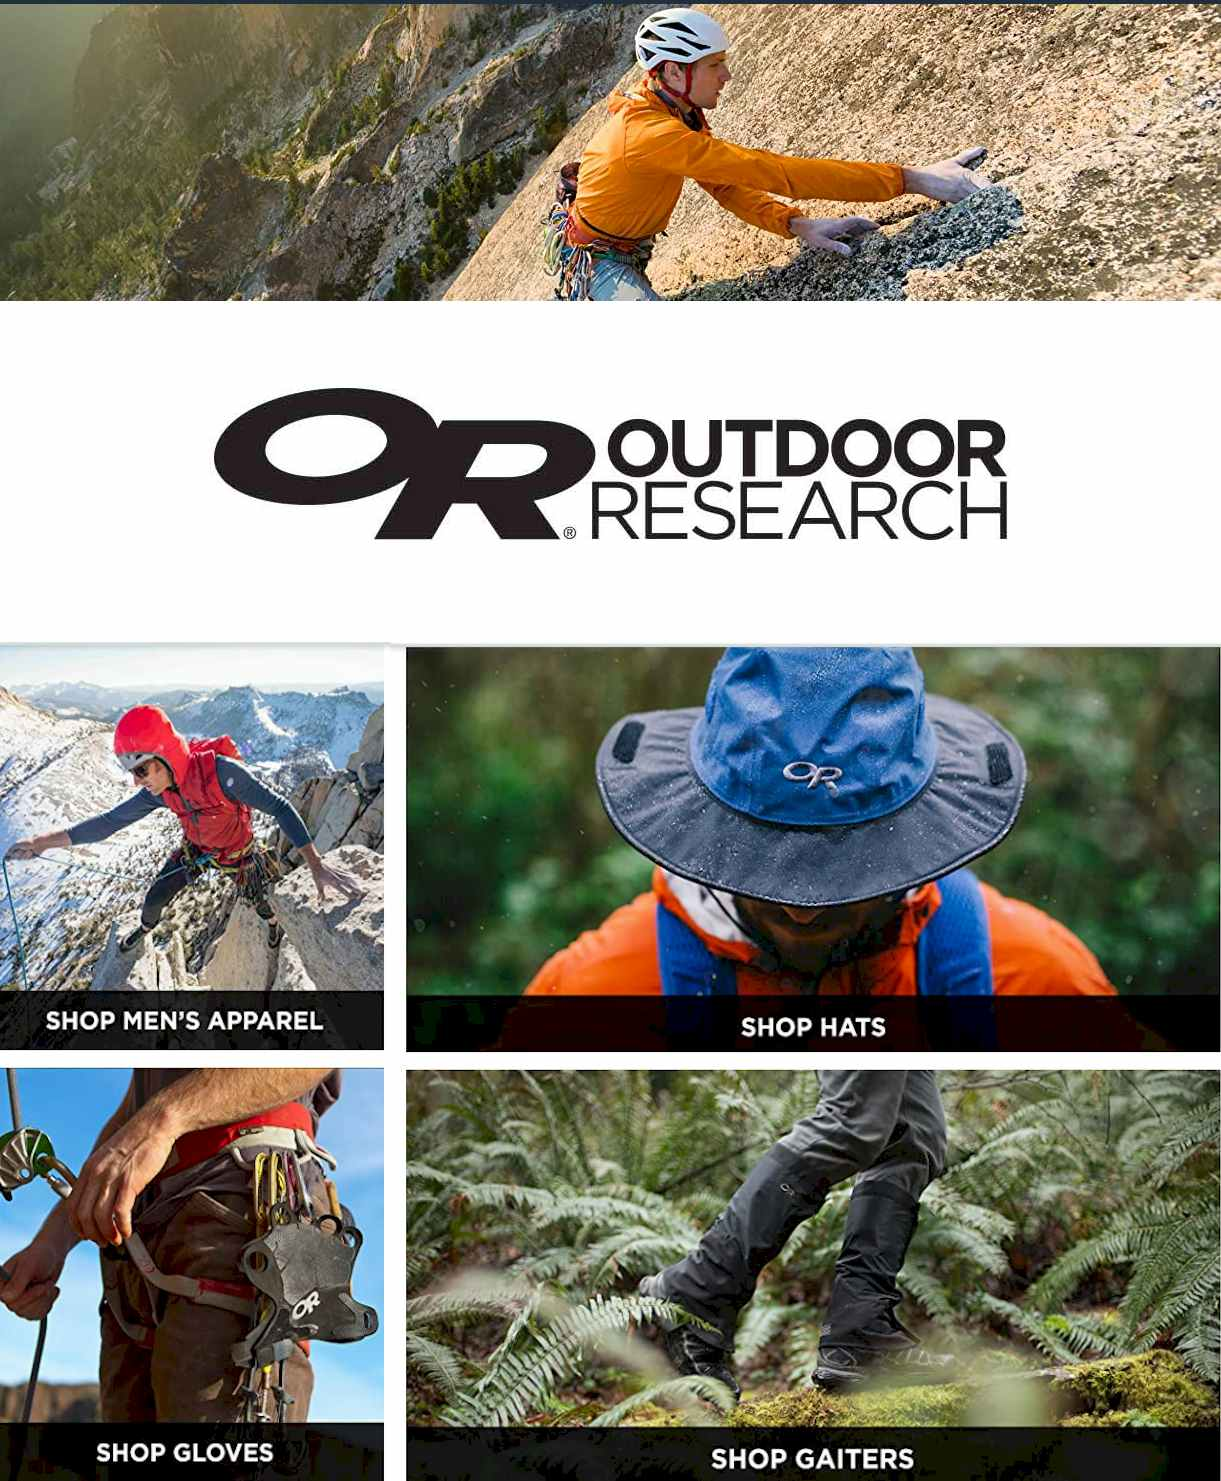 Outdoor Research Store on Amazon